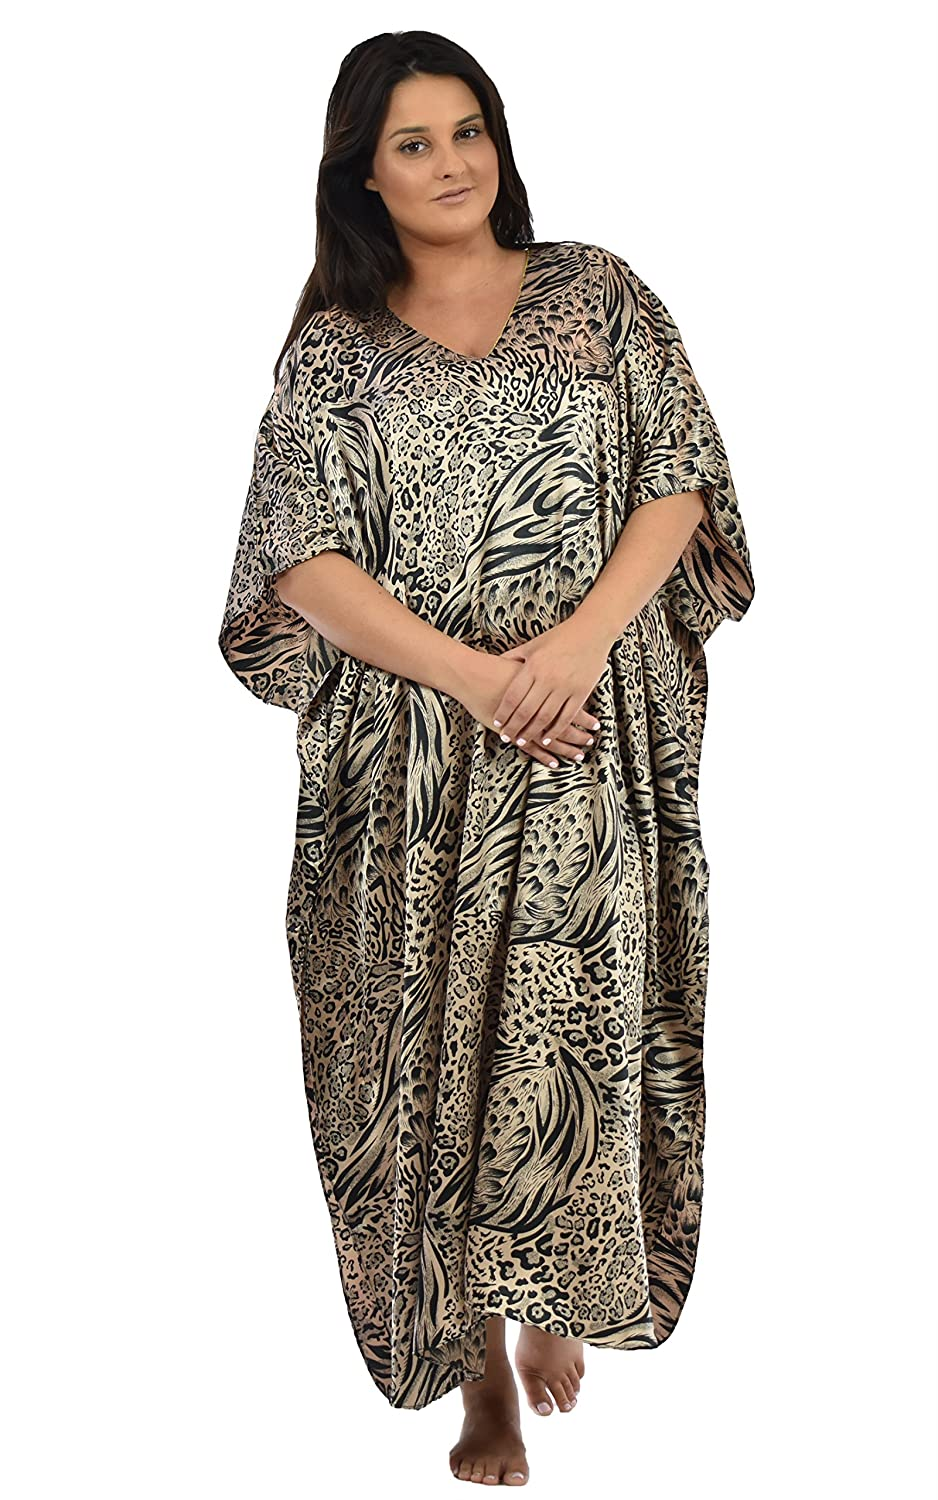 a4beb08a6 Up2date Fashion Satin Caftan/Kaftan in Sandy Animal Print, Style Caf-31C4  at Amazon Women's Clothing store: